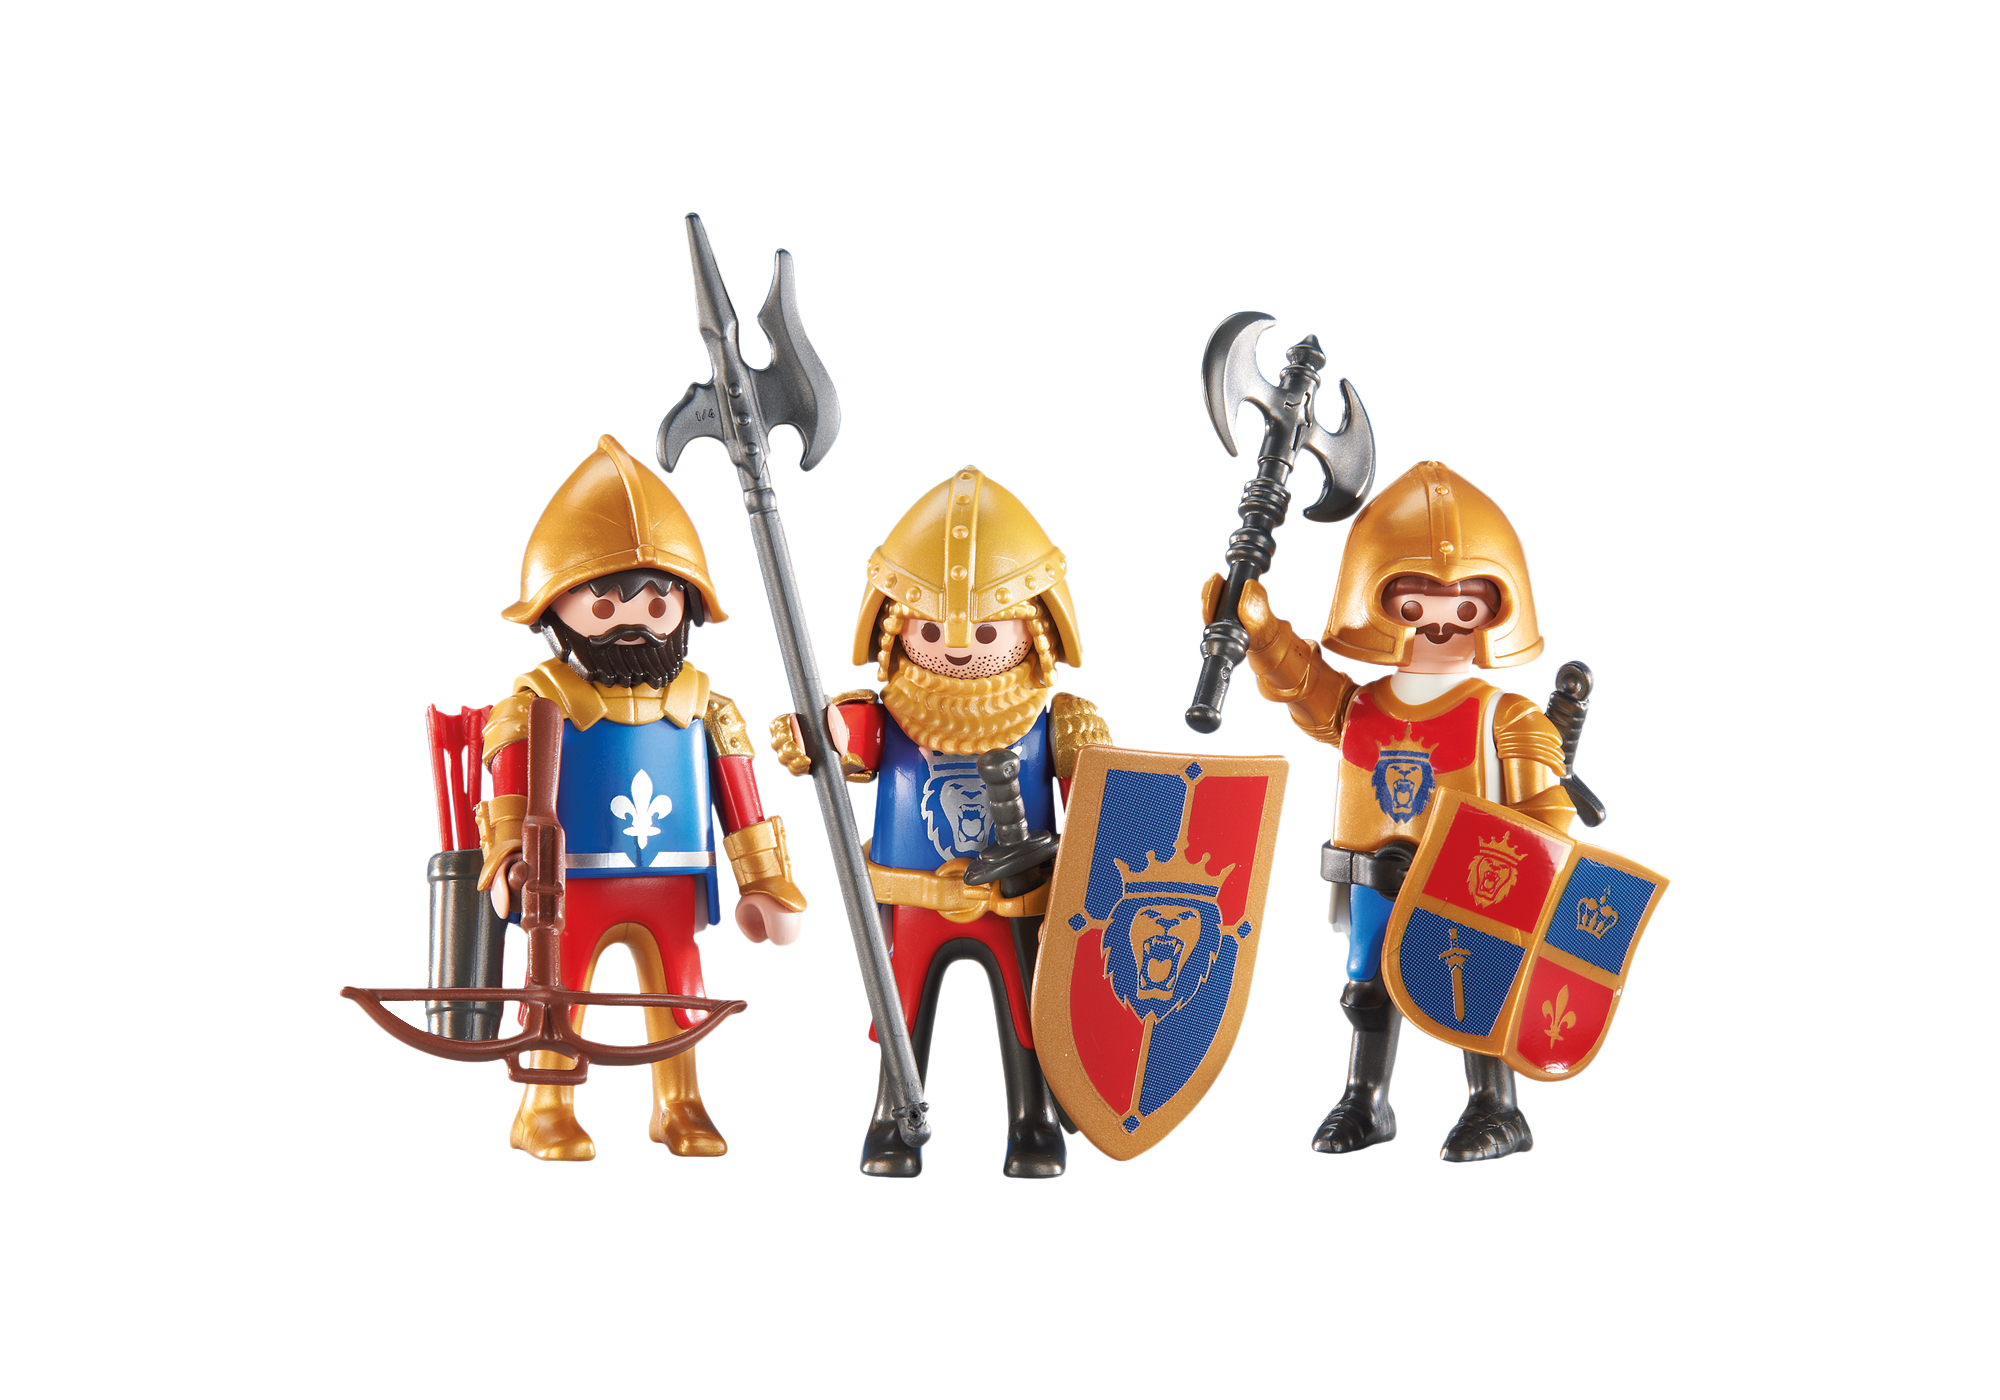 http://media.playmobil.com/i/playmobil/6379_product_detail/3 Lion knights